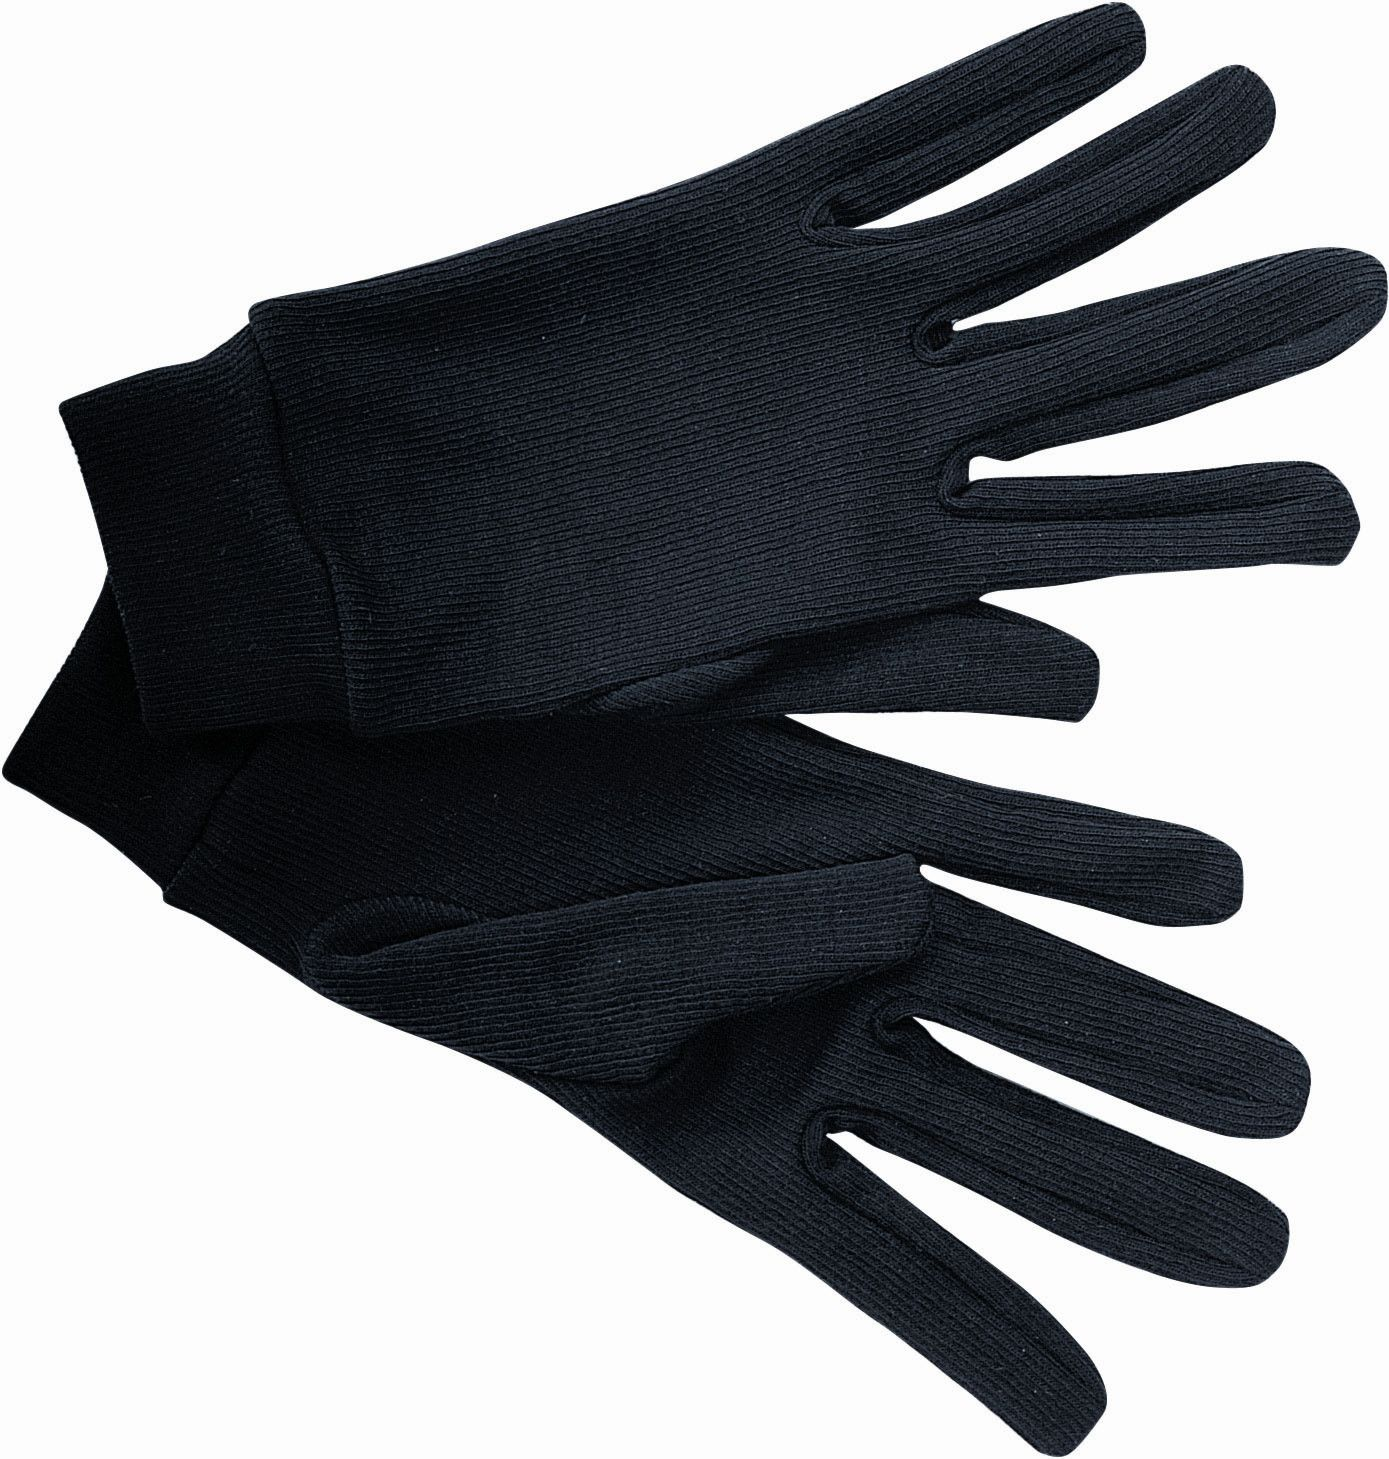 Motorcycle gloves ixs - Hands Motorcycle Windstopper Inner Glove Ixs Motorcycle Fashion Motorcycles Gear